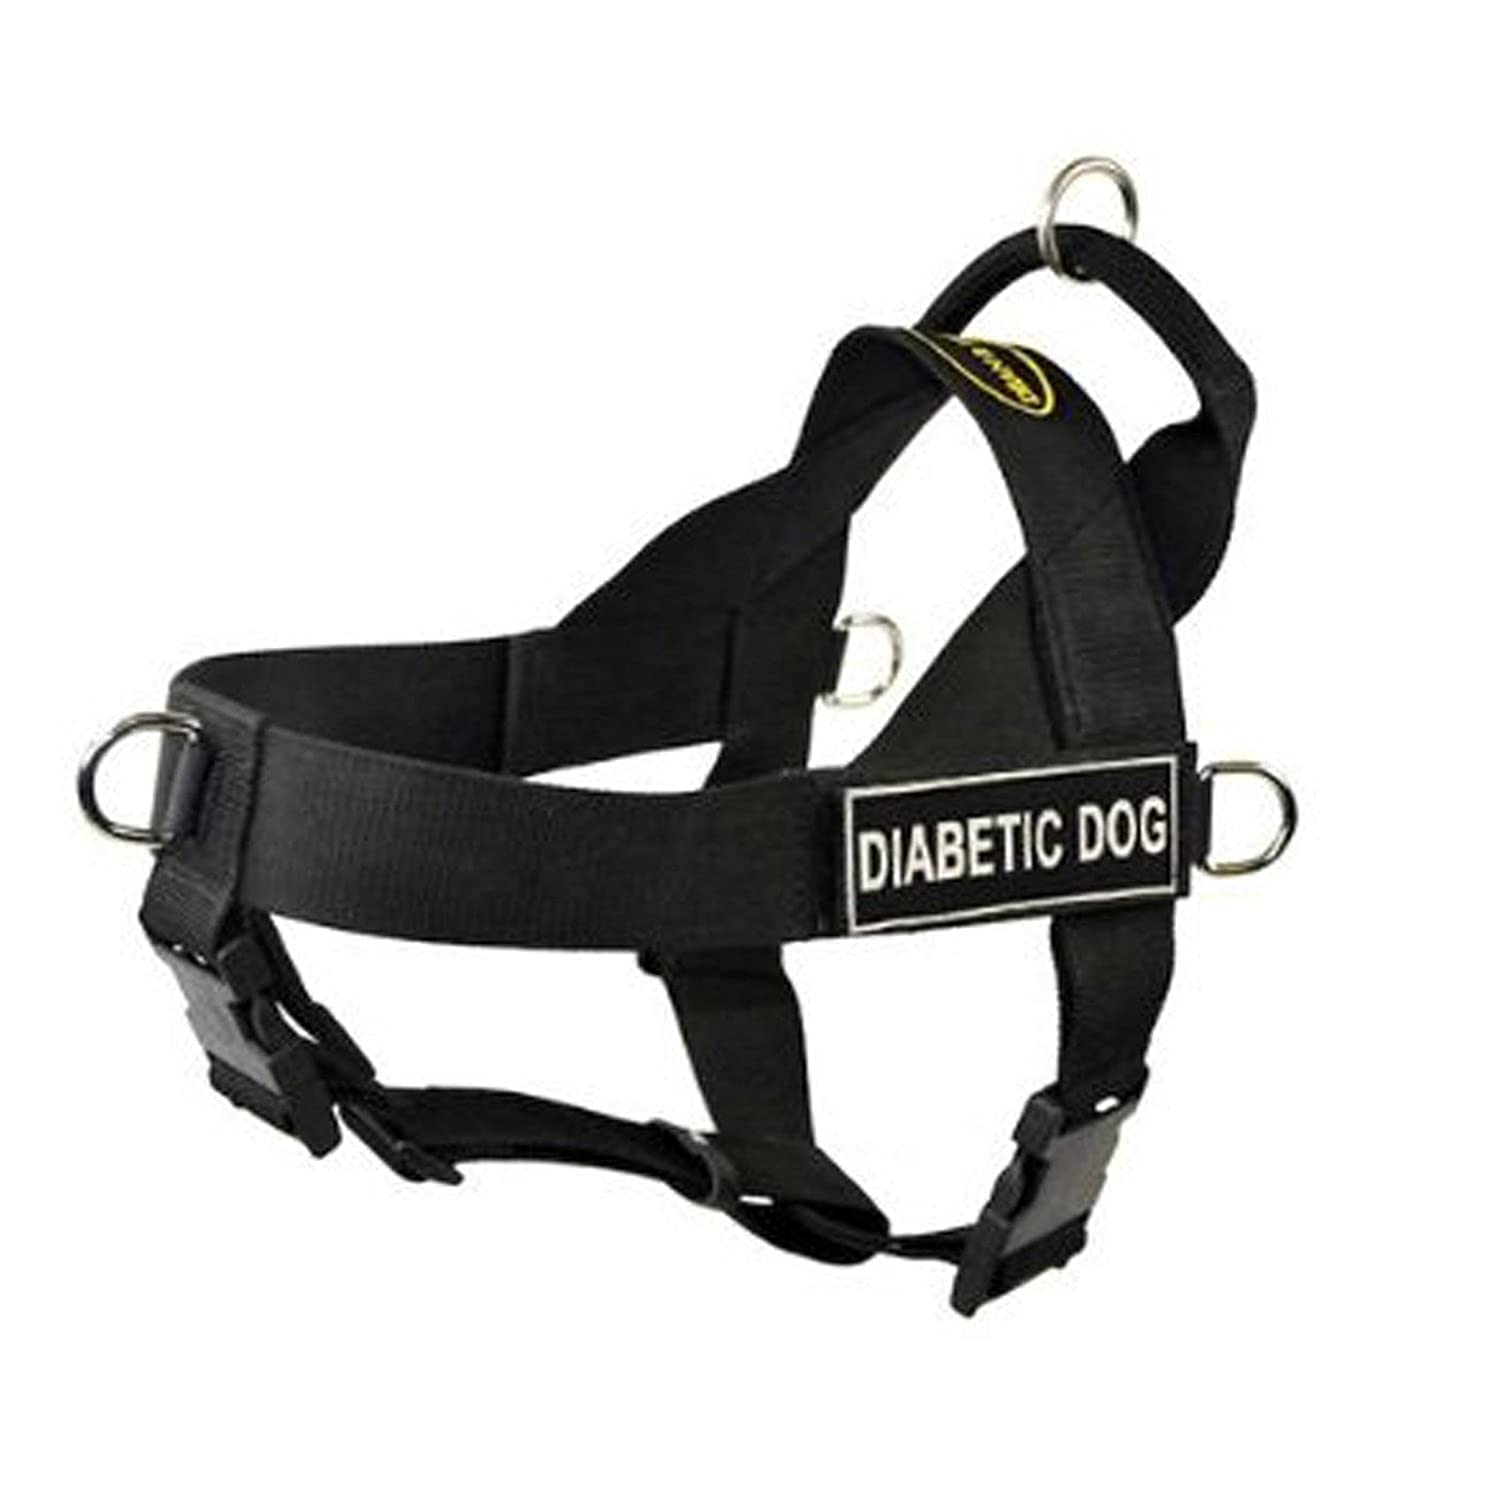 Dean & Tyler Universal No Pull Dog Harness, Diabetic Dog, Black, X-Small, Fits Girth Size  53cm to 64cm